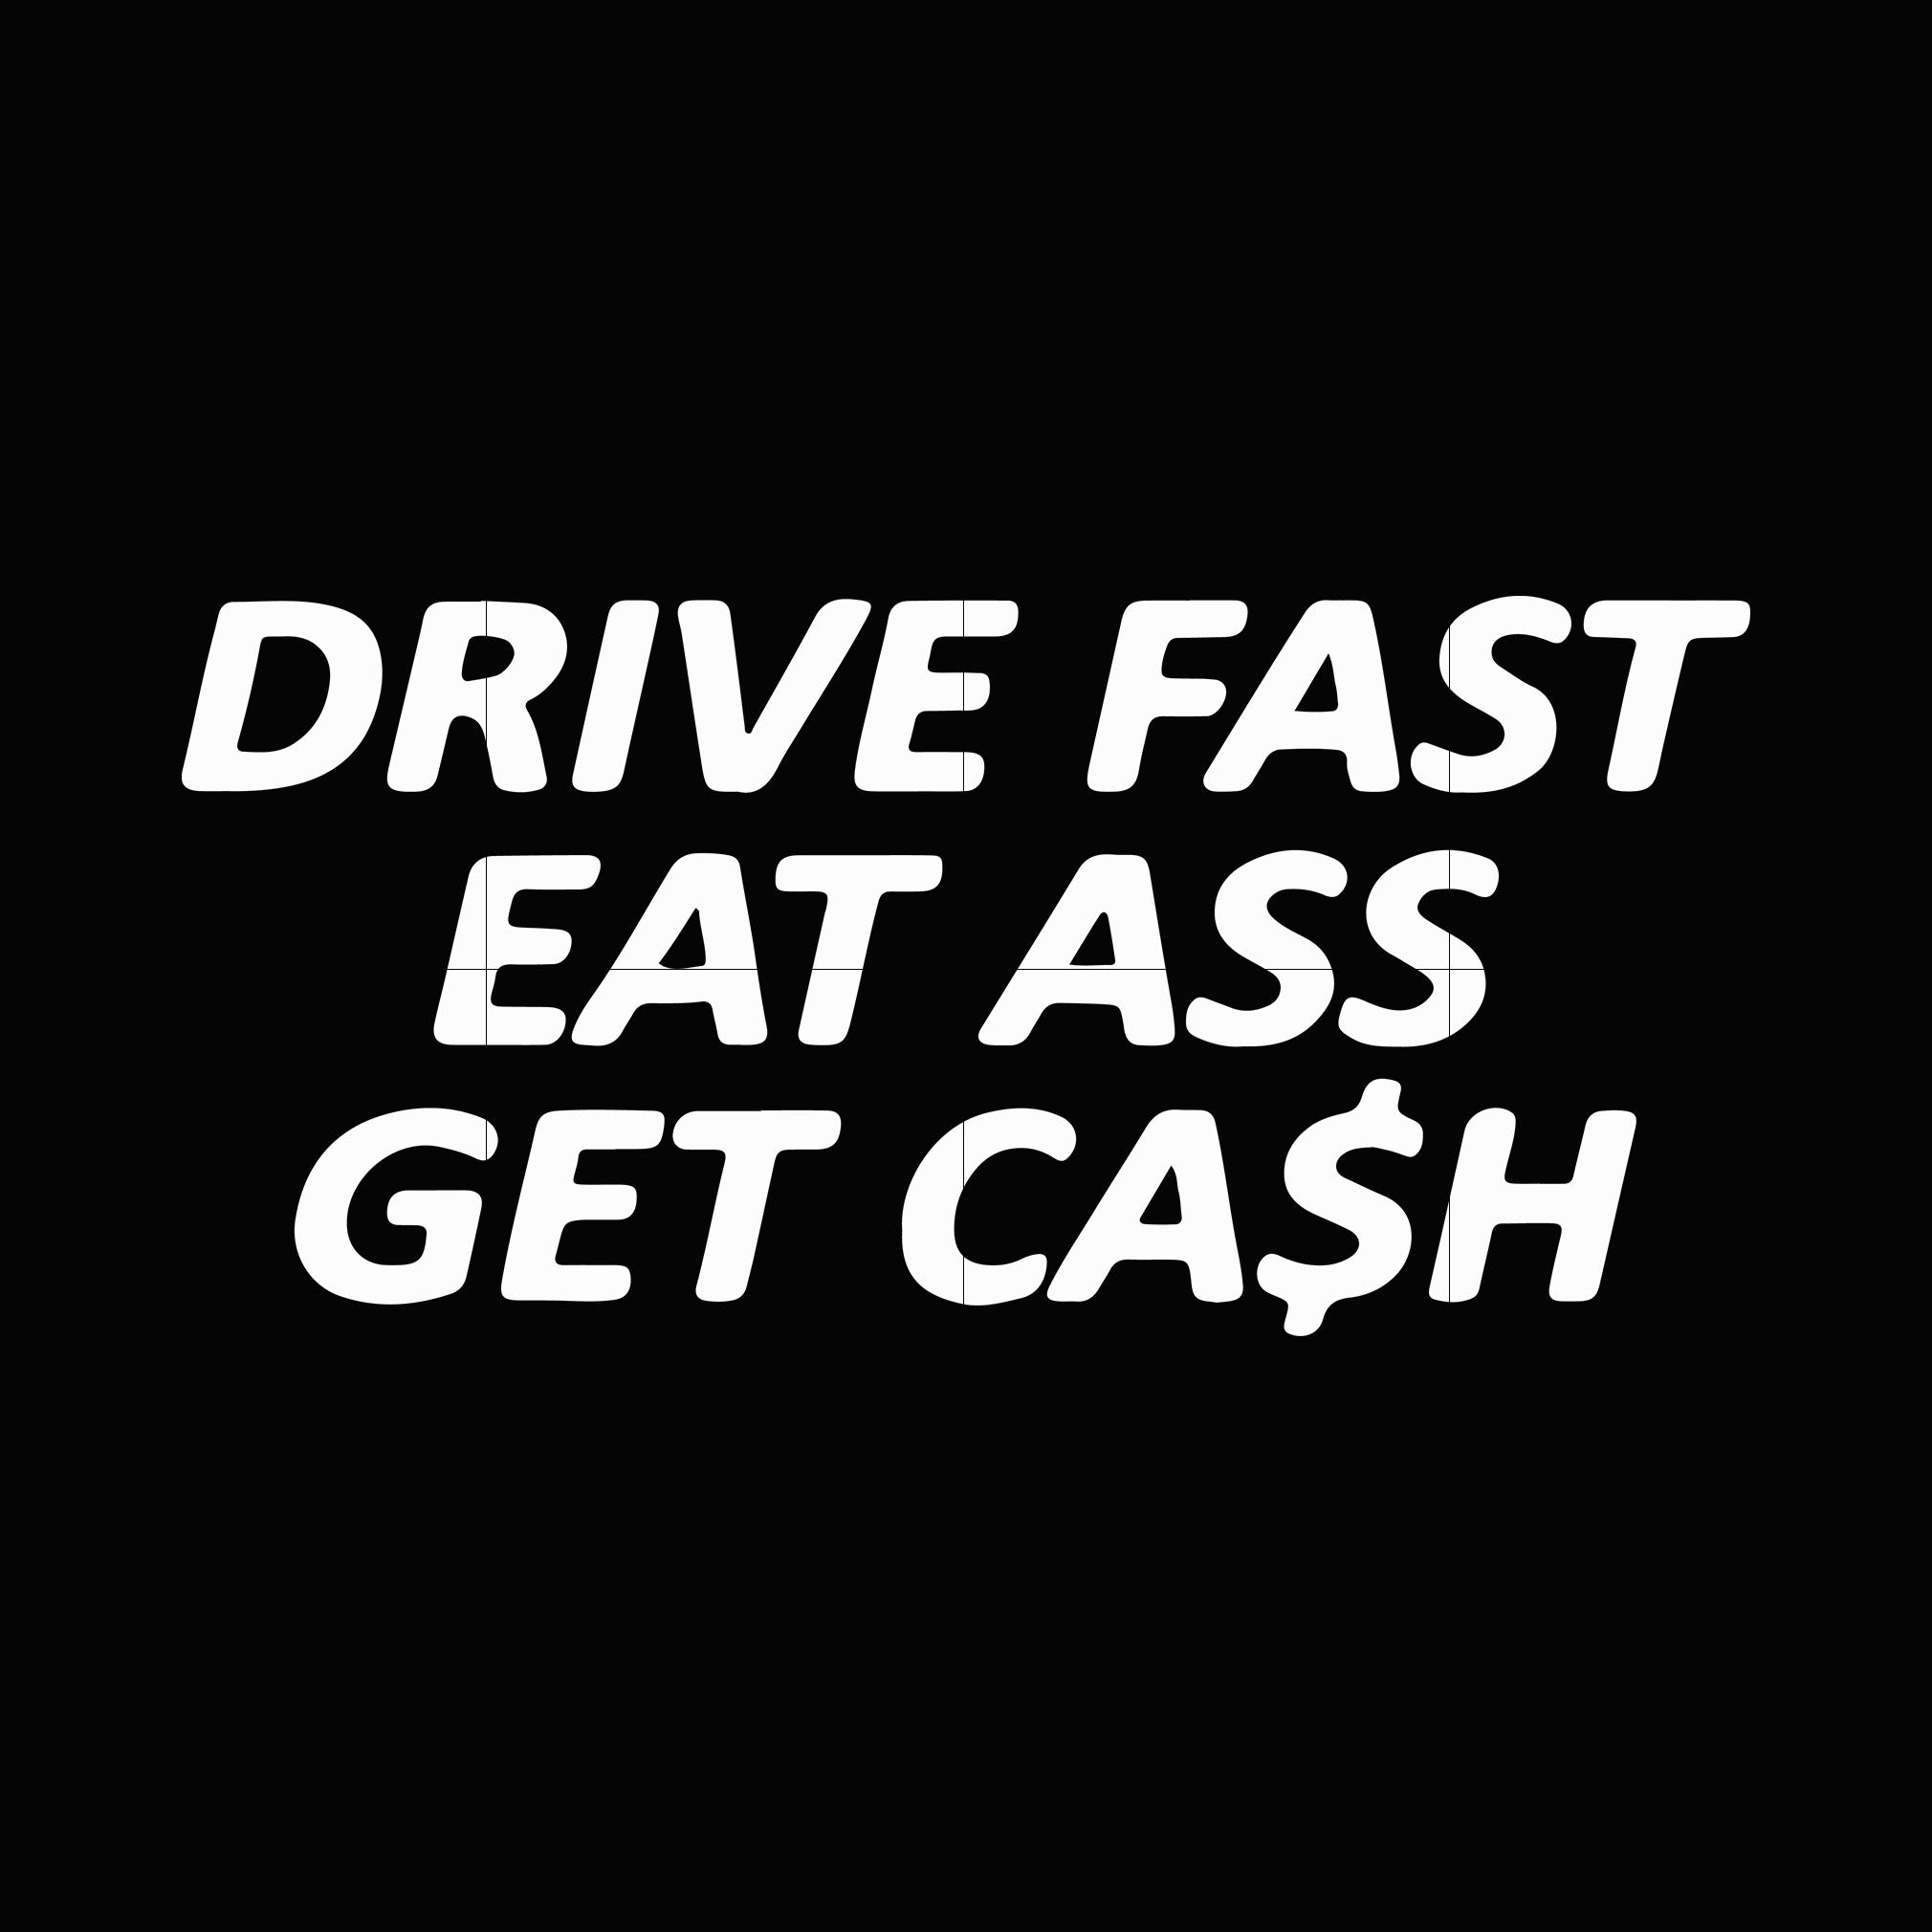 Drive fast eat ass get cash svg,dxf,eps,png digital file